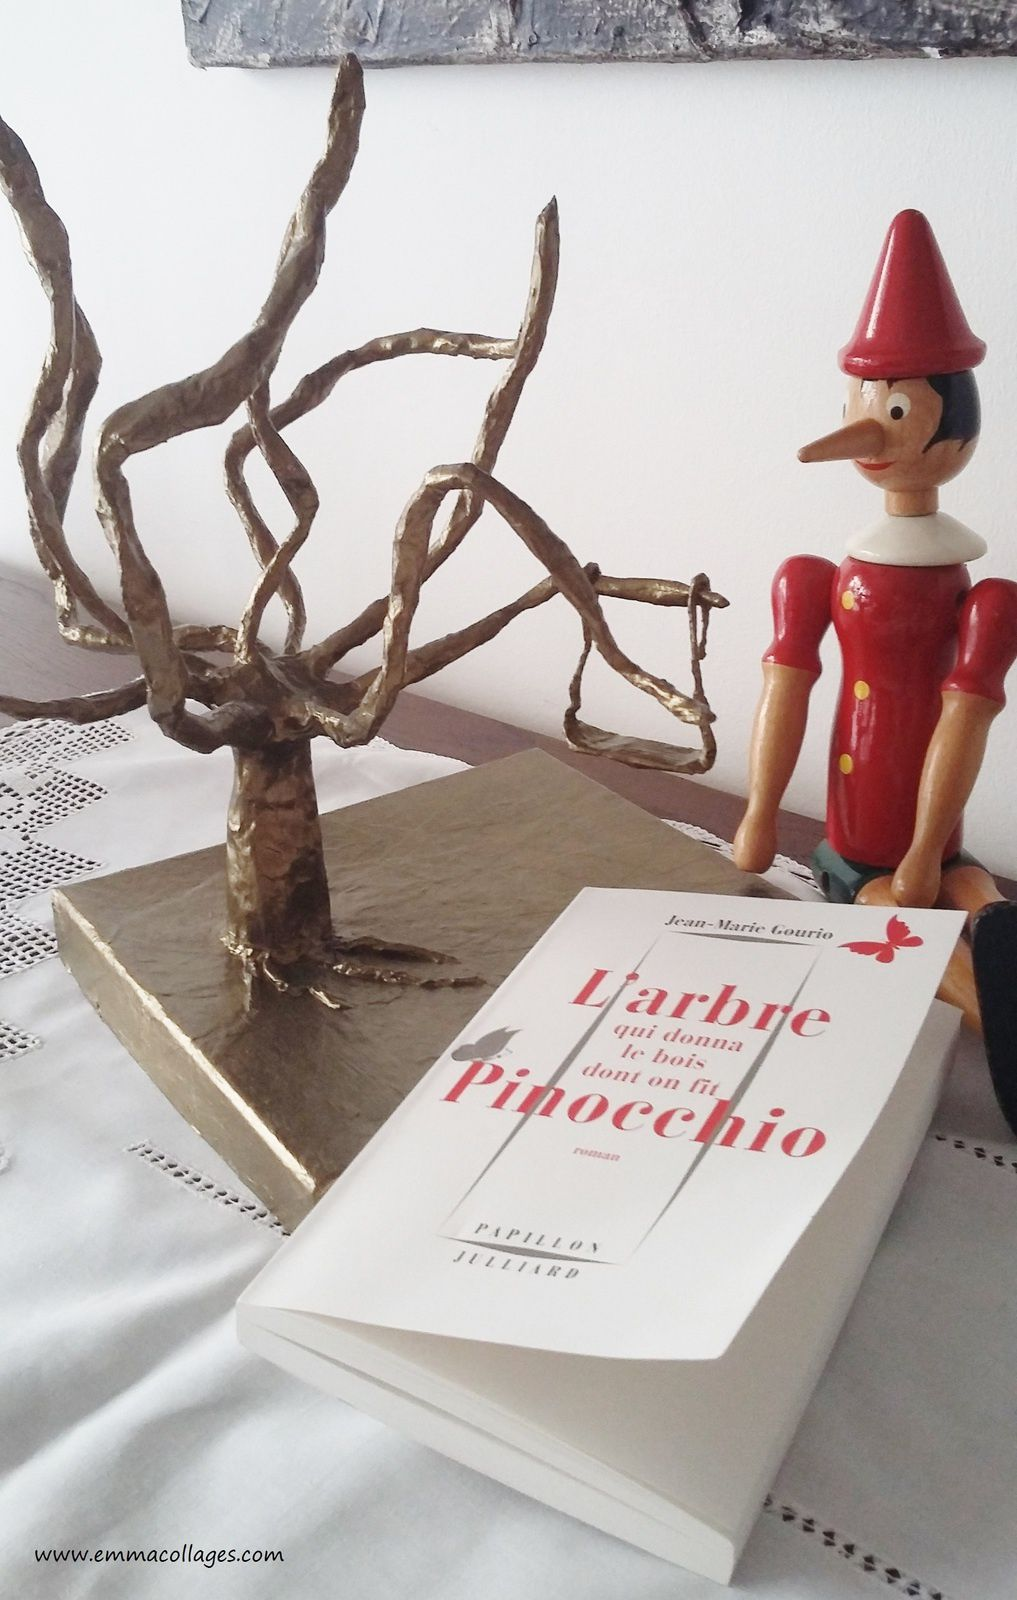 "#VendrediLecture du 06 mai 2016, "" L'Arbre qui donna le bois dont on fit Pinocchio"" de Jean-Marie Gourio aux Editions Julliard."